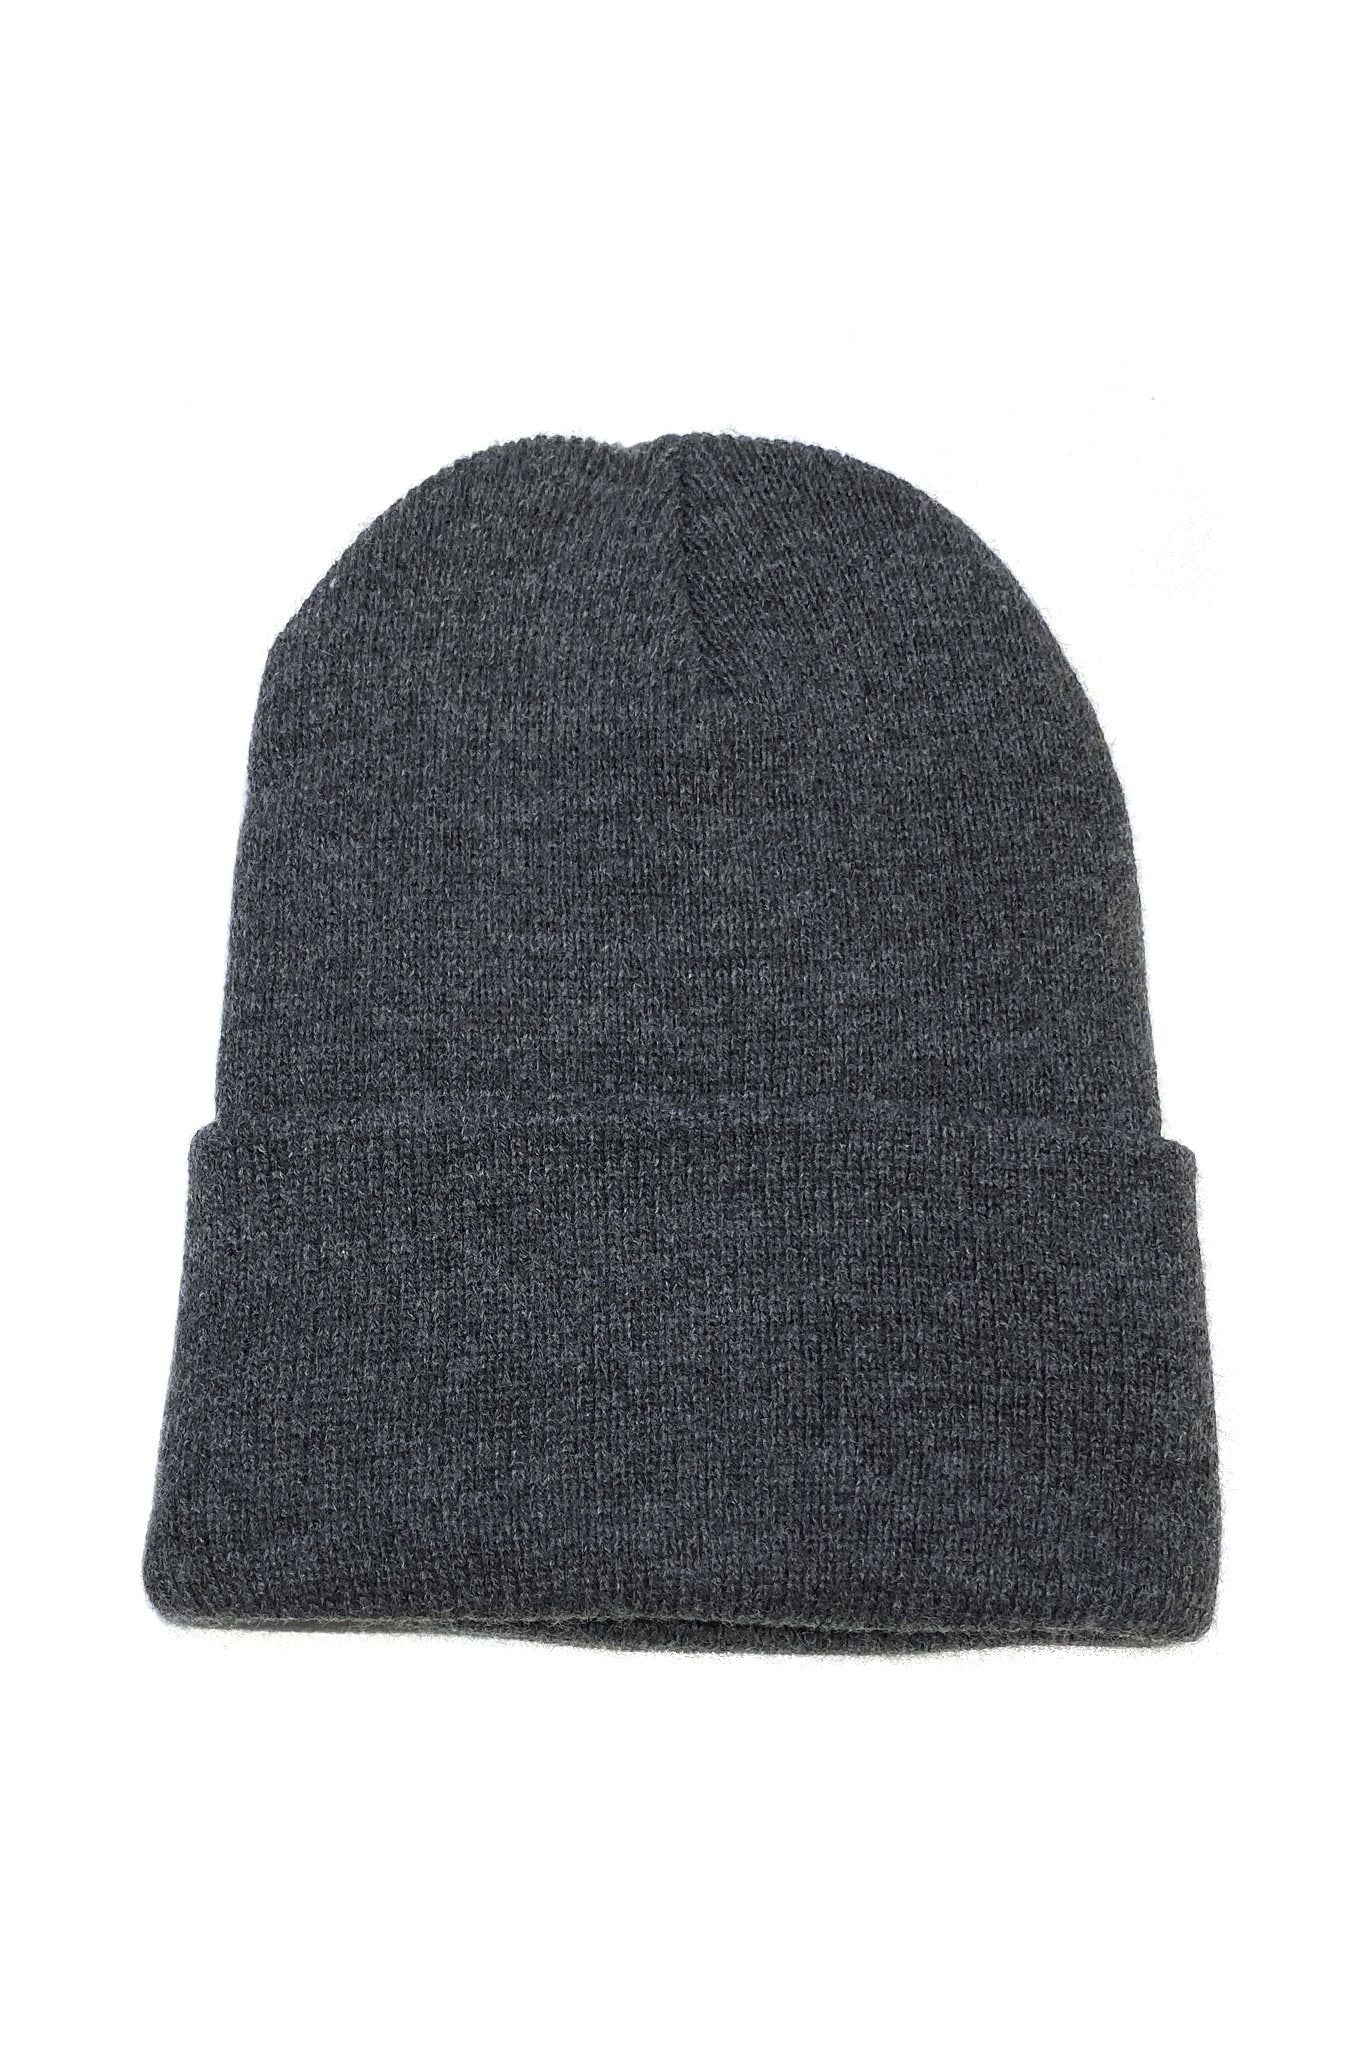 Men's Thinsulate Watch Cap - Charcoal